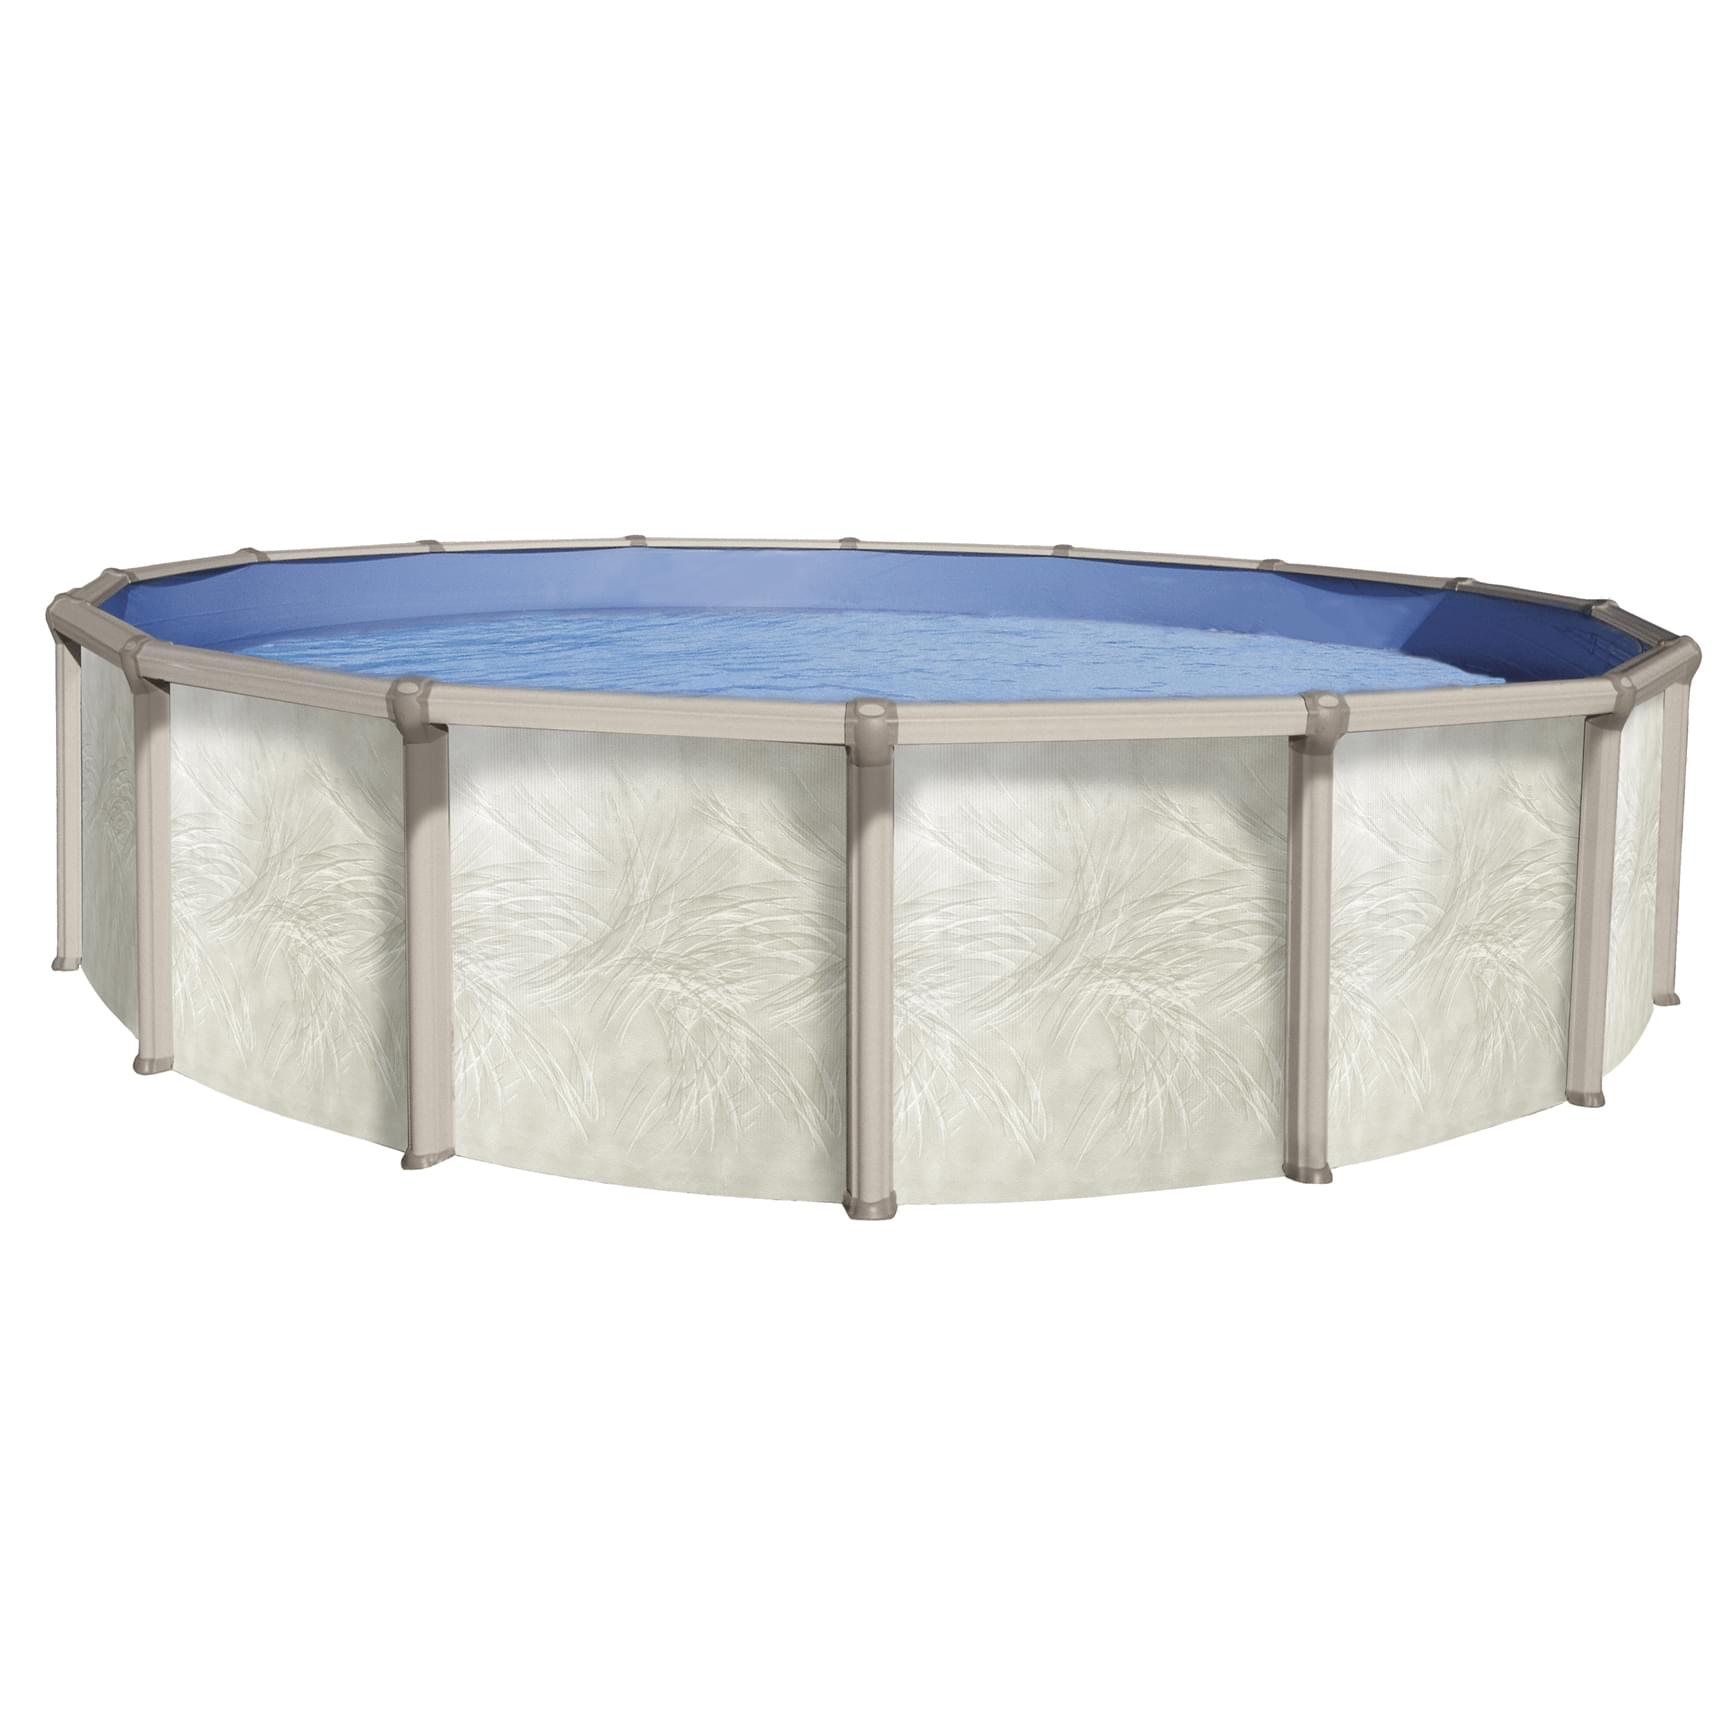 Neptune 15 Ft Round Above Ground Pool With 54 Inch Wall